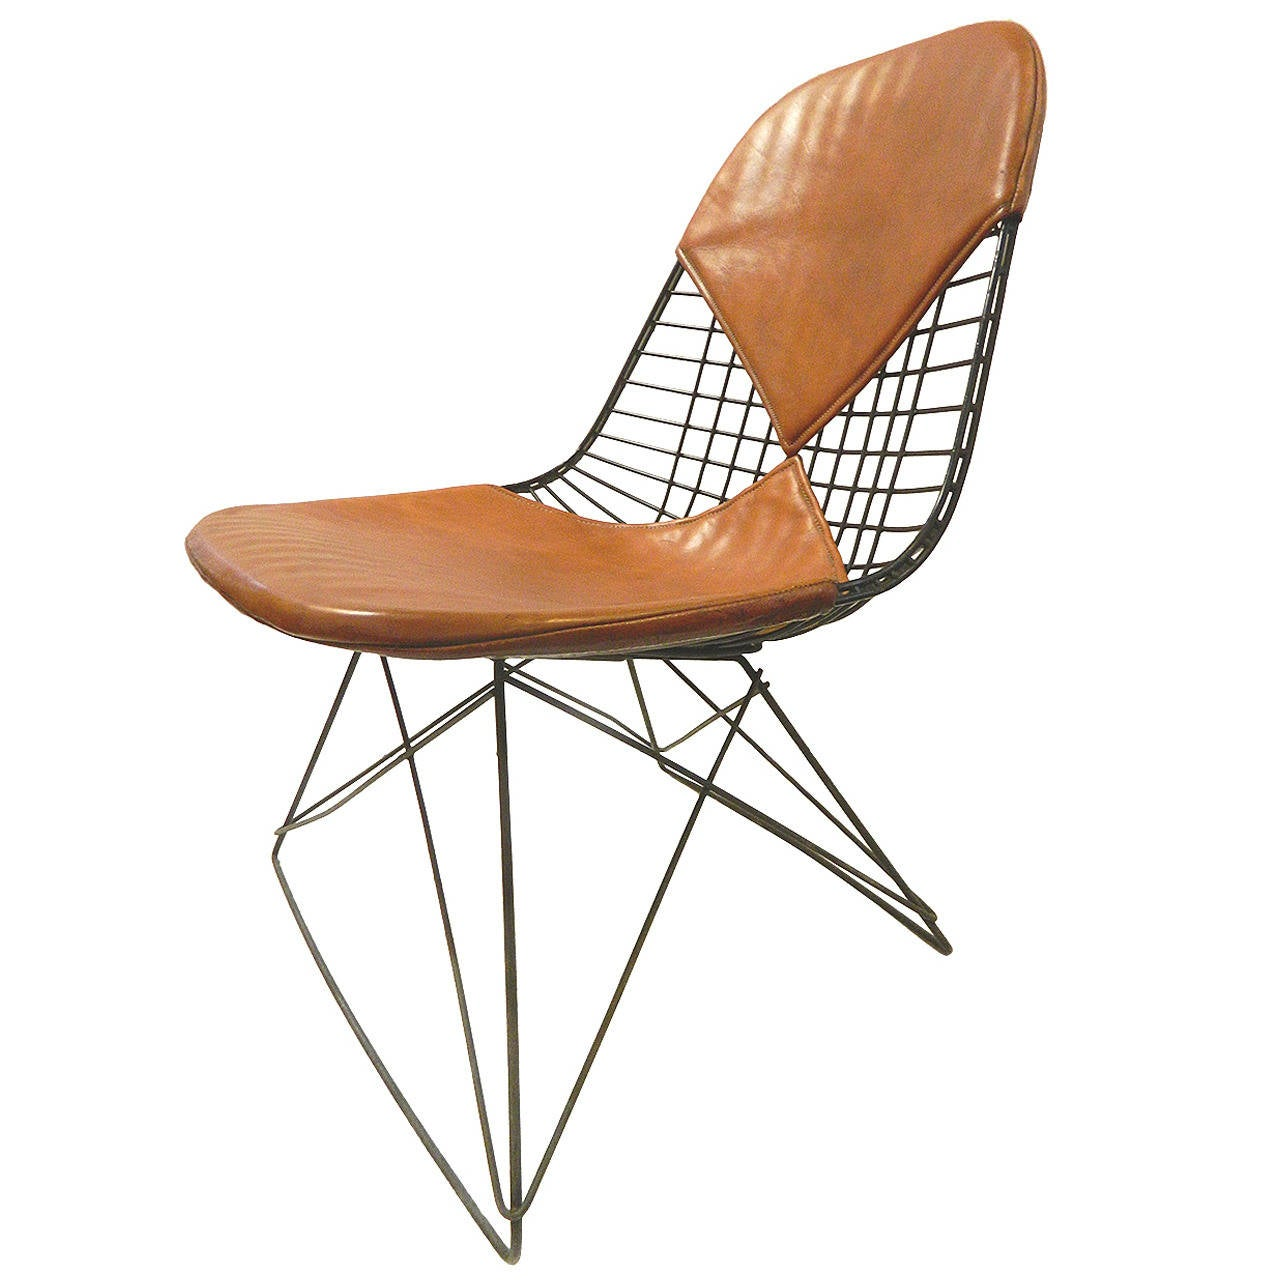 Eames LKR Lounge Chair For Sale at 1stdibs